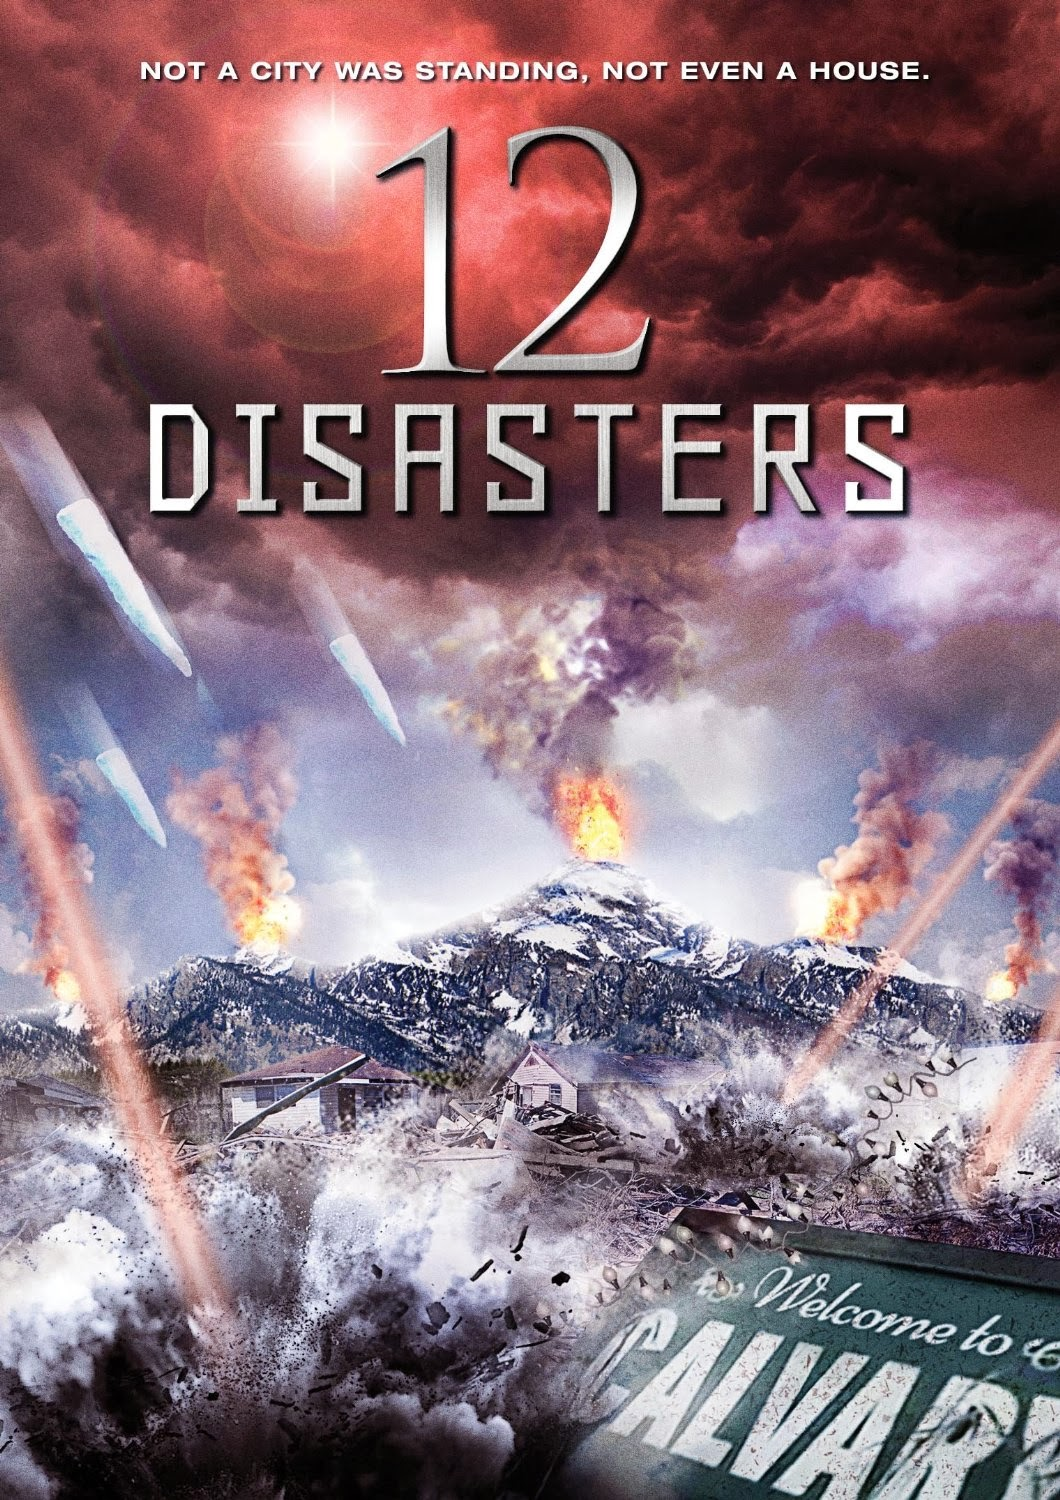 The best disaster films 80